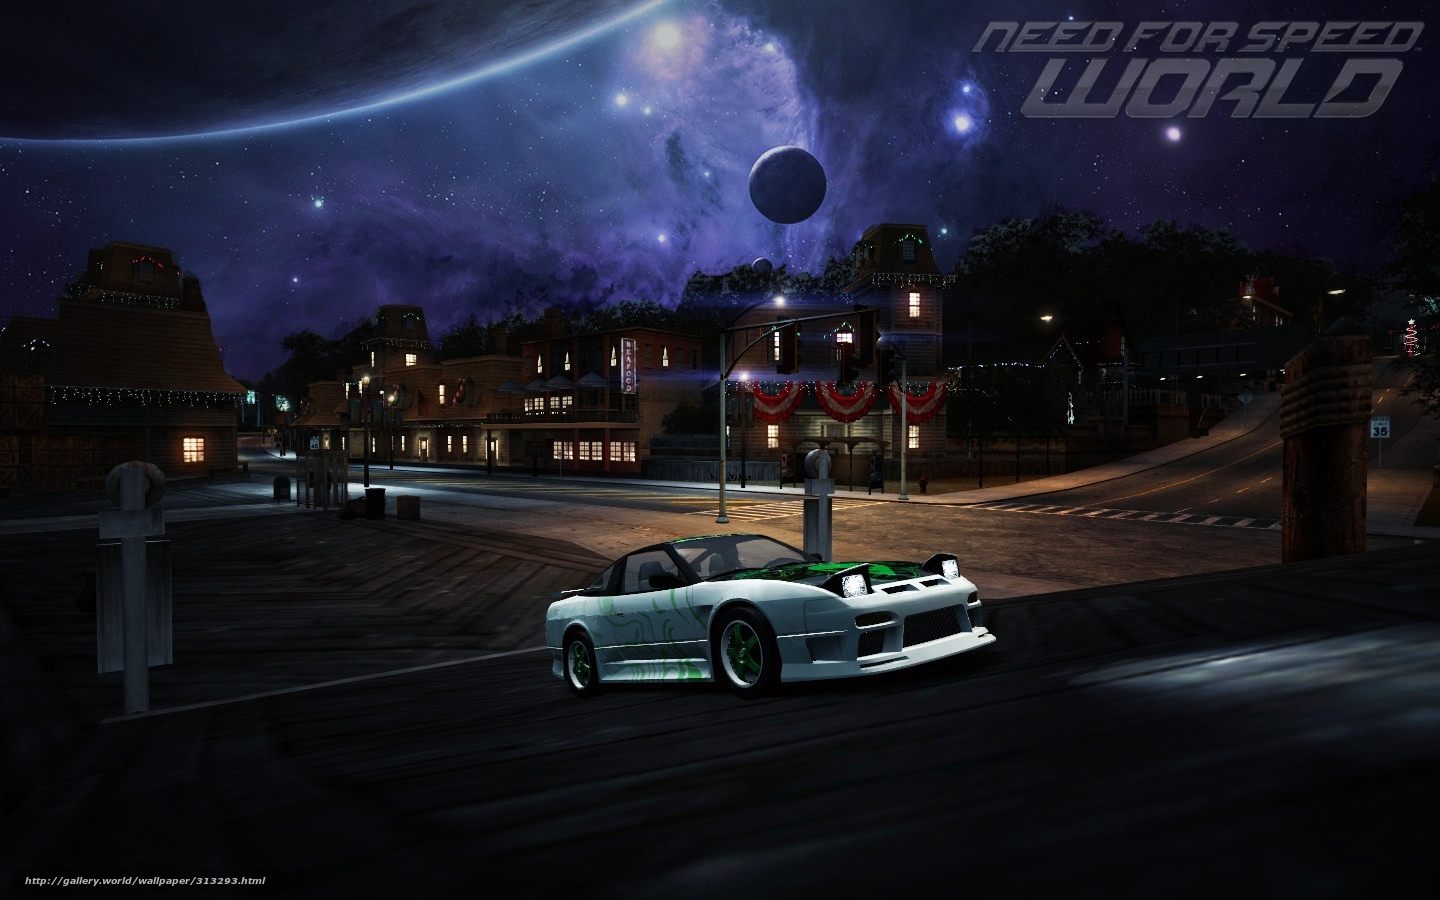 Need for speed world wallpaper